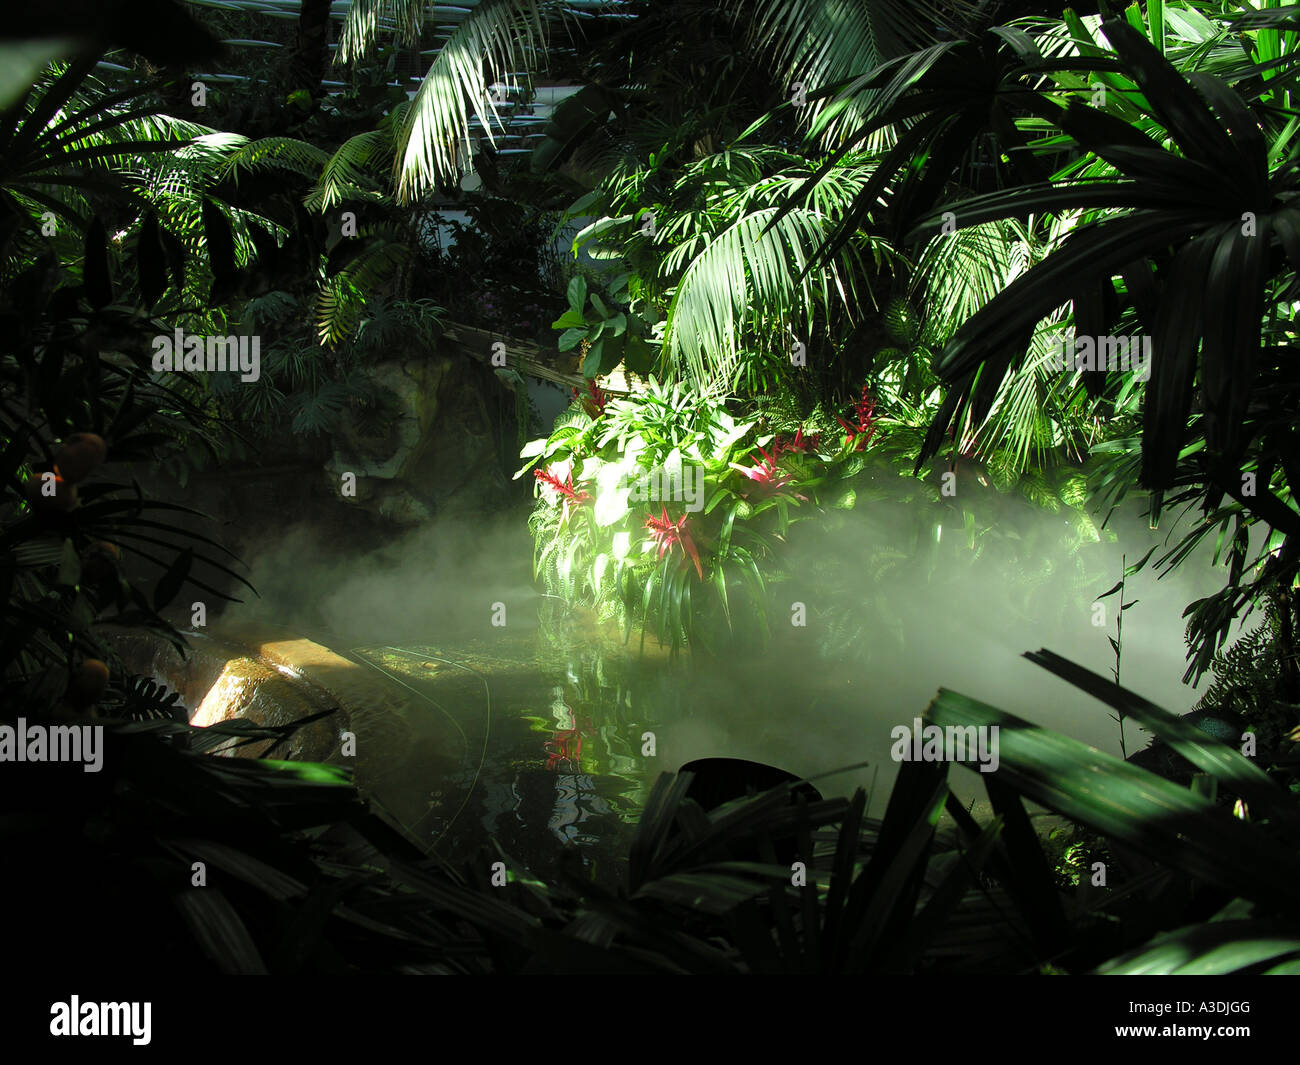 An indoor model rain forest with mist and variety of green foliage big leaves. - Stock Image